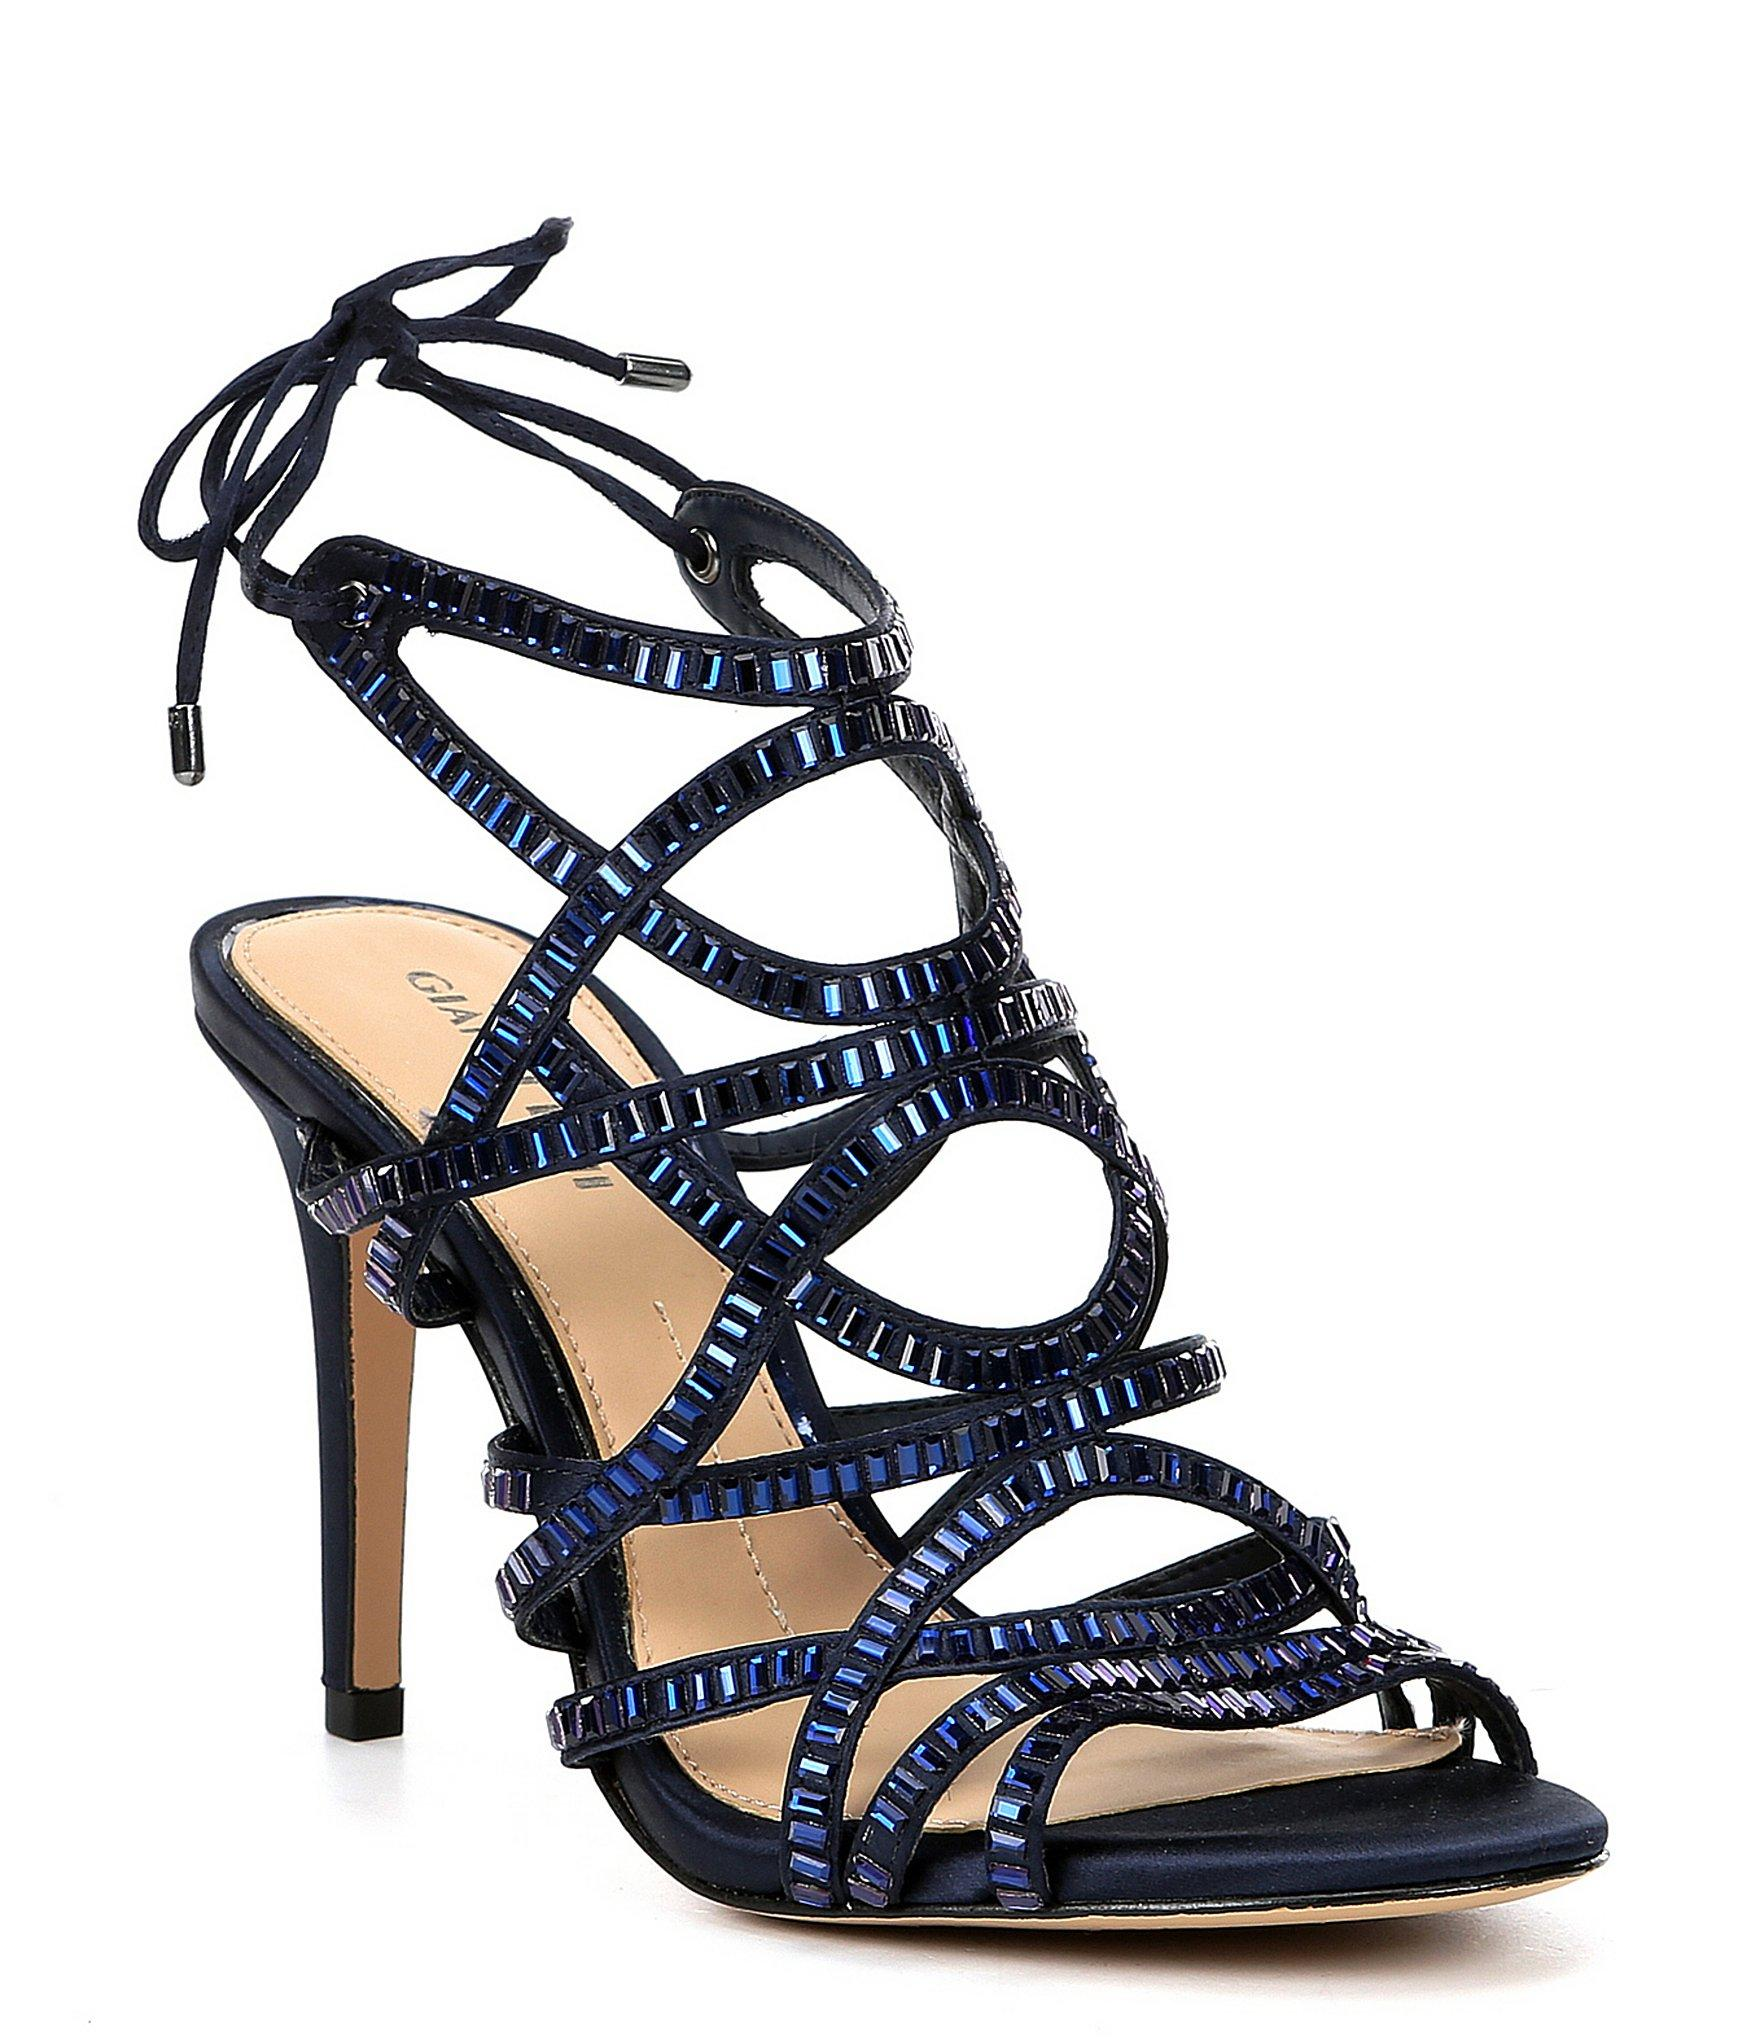 1e3bbf762 Lyst - Gianni Bini Kellzie Satin Jeweled Caged Dress Sandals in Blue